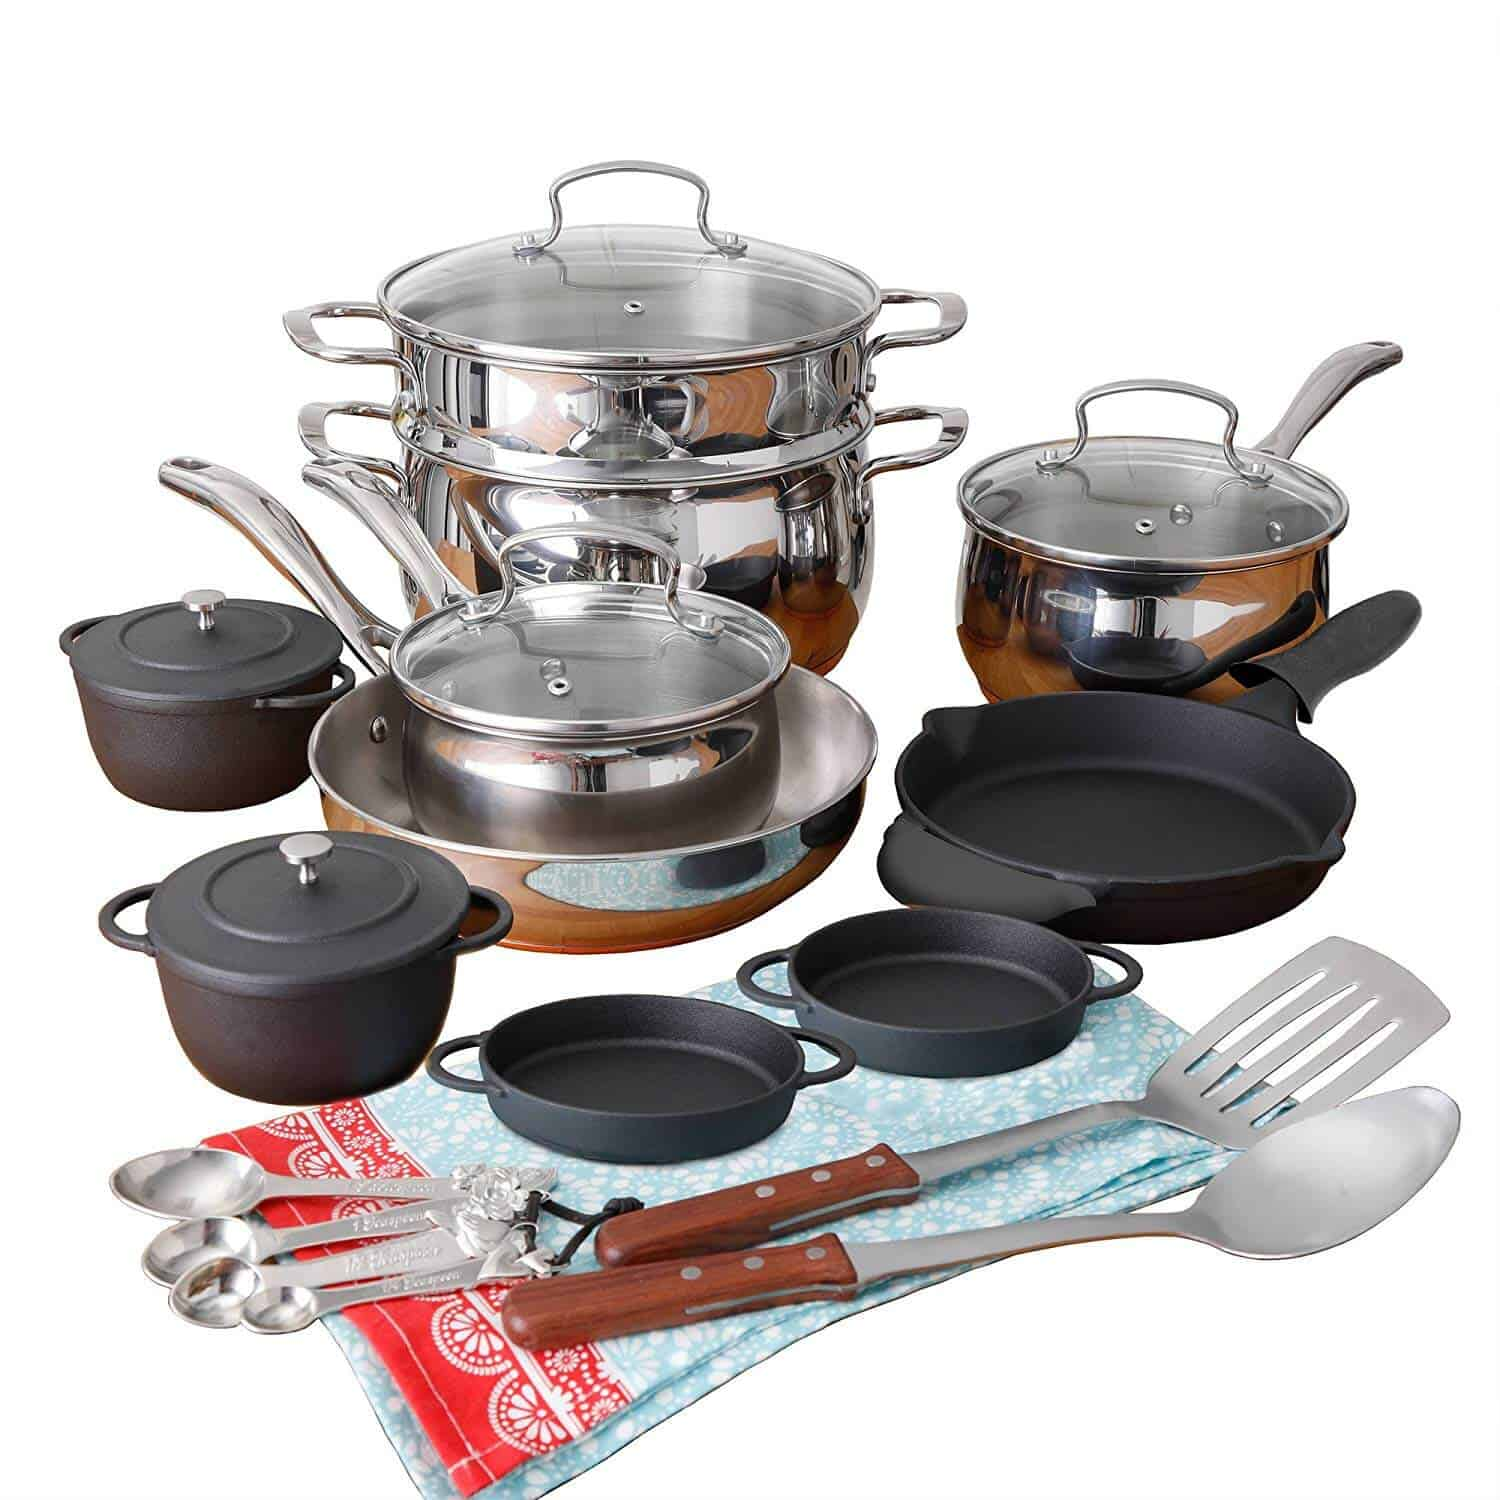 The Pioneer Woman Copper Charm 23-Piece Mother's Day Cookware Combo Set